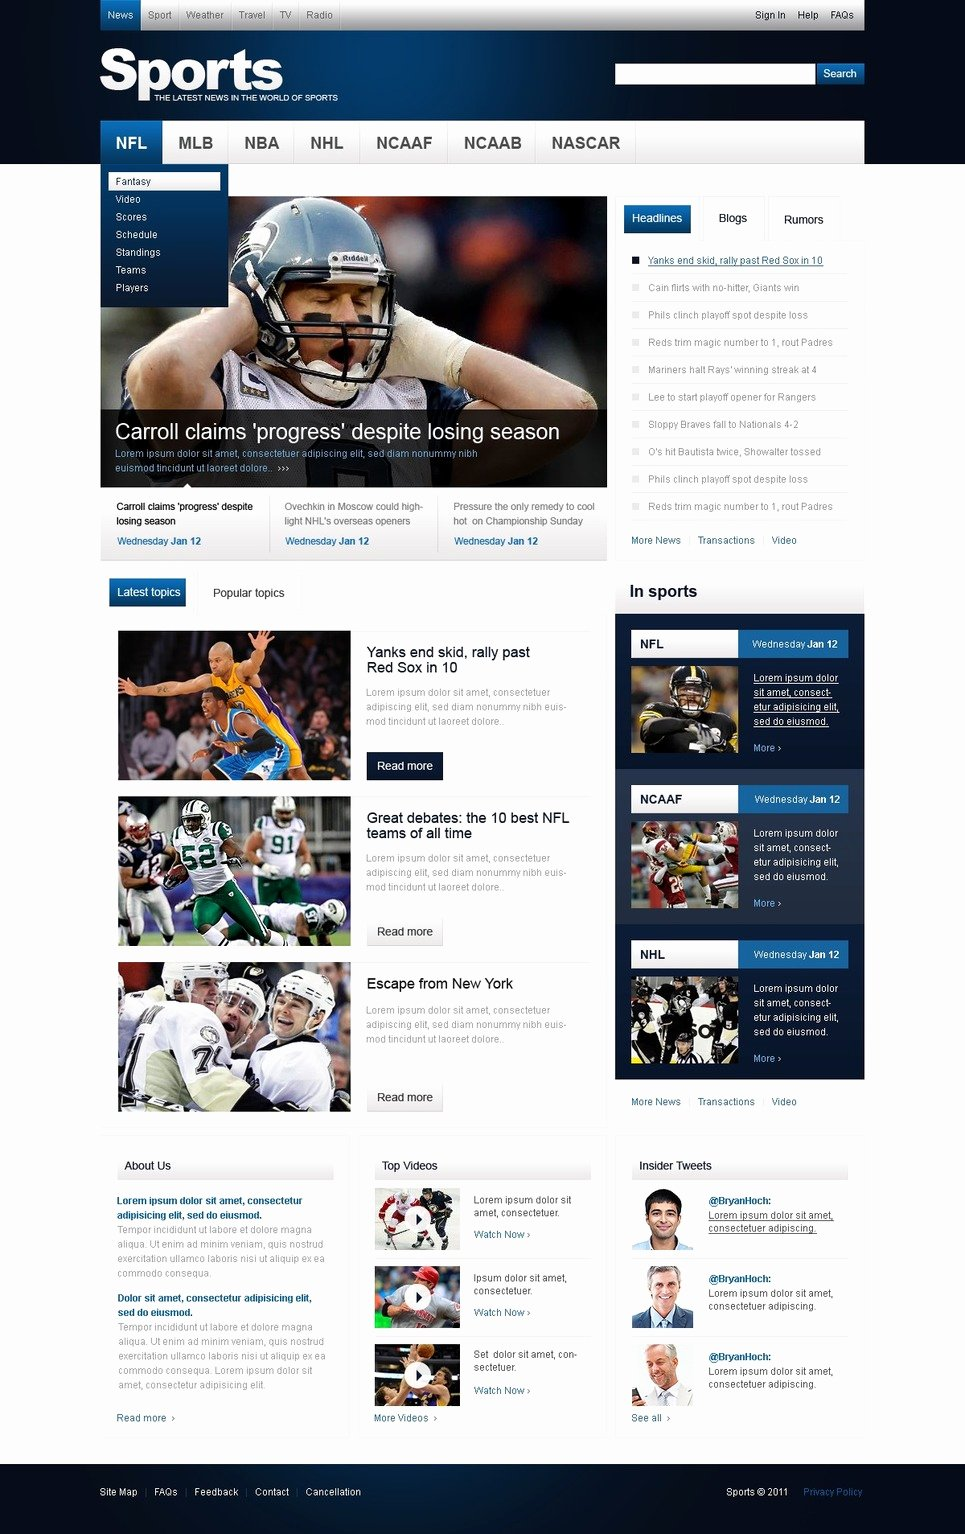 Sports Web Site Template Awesome Sports News Website Template